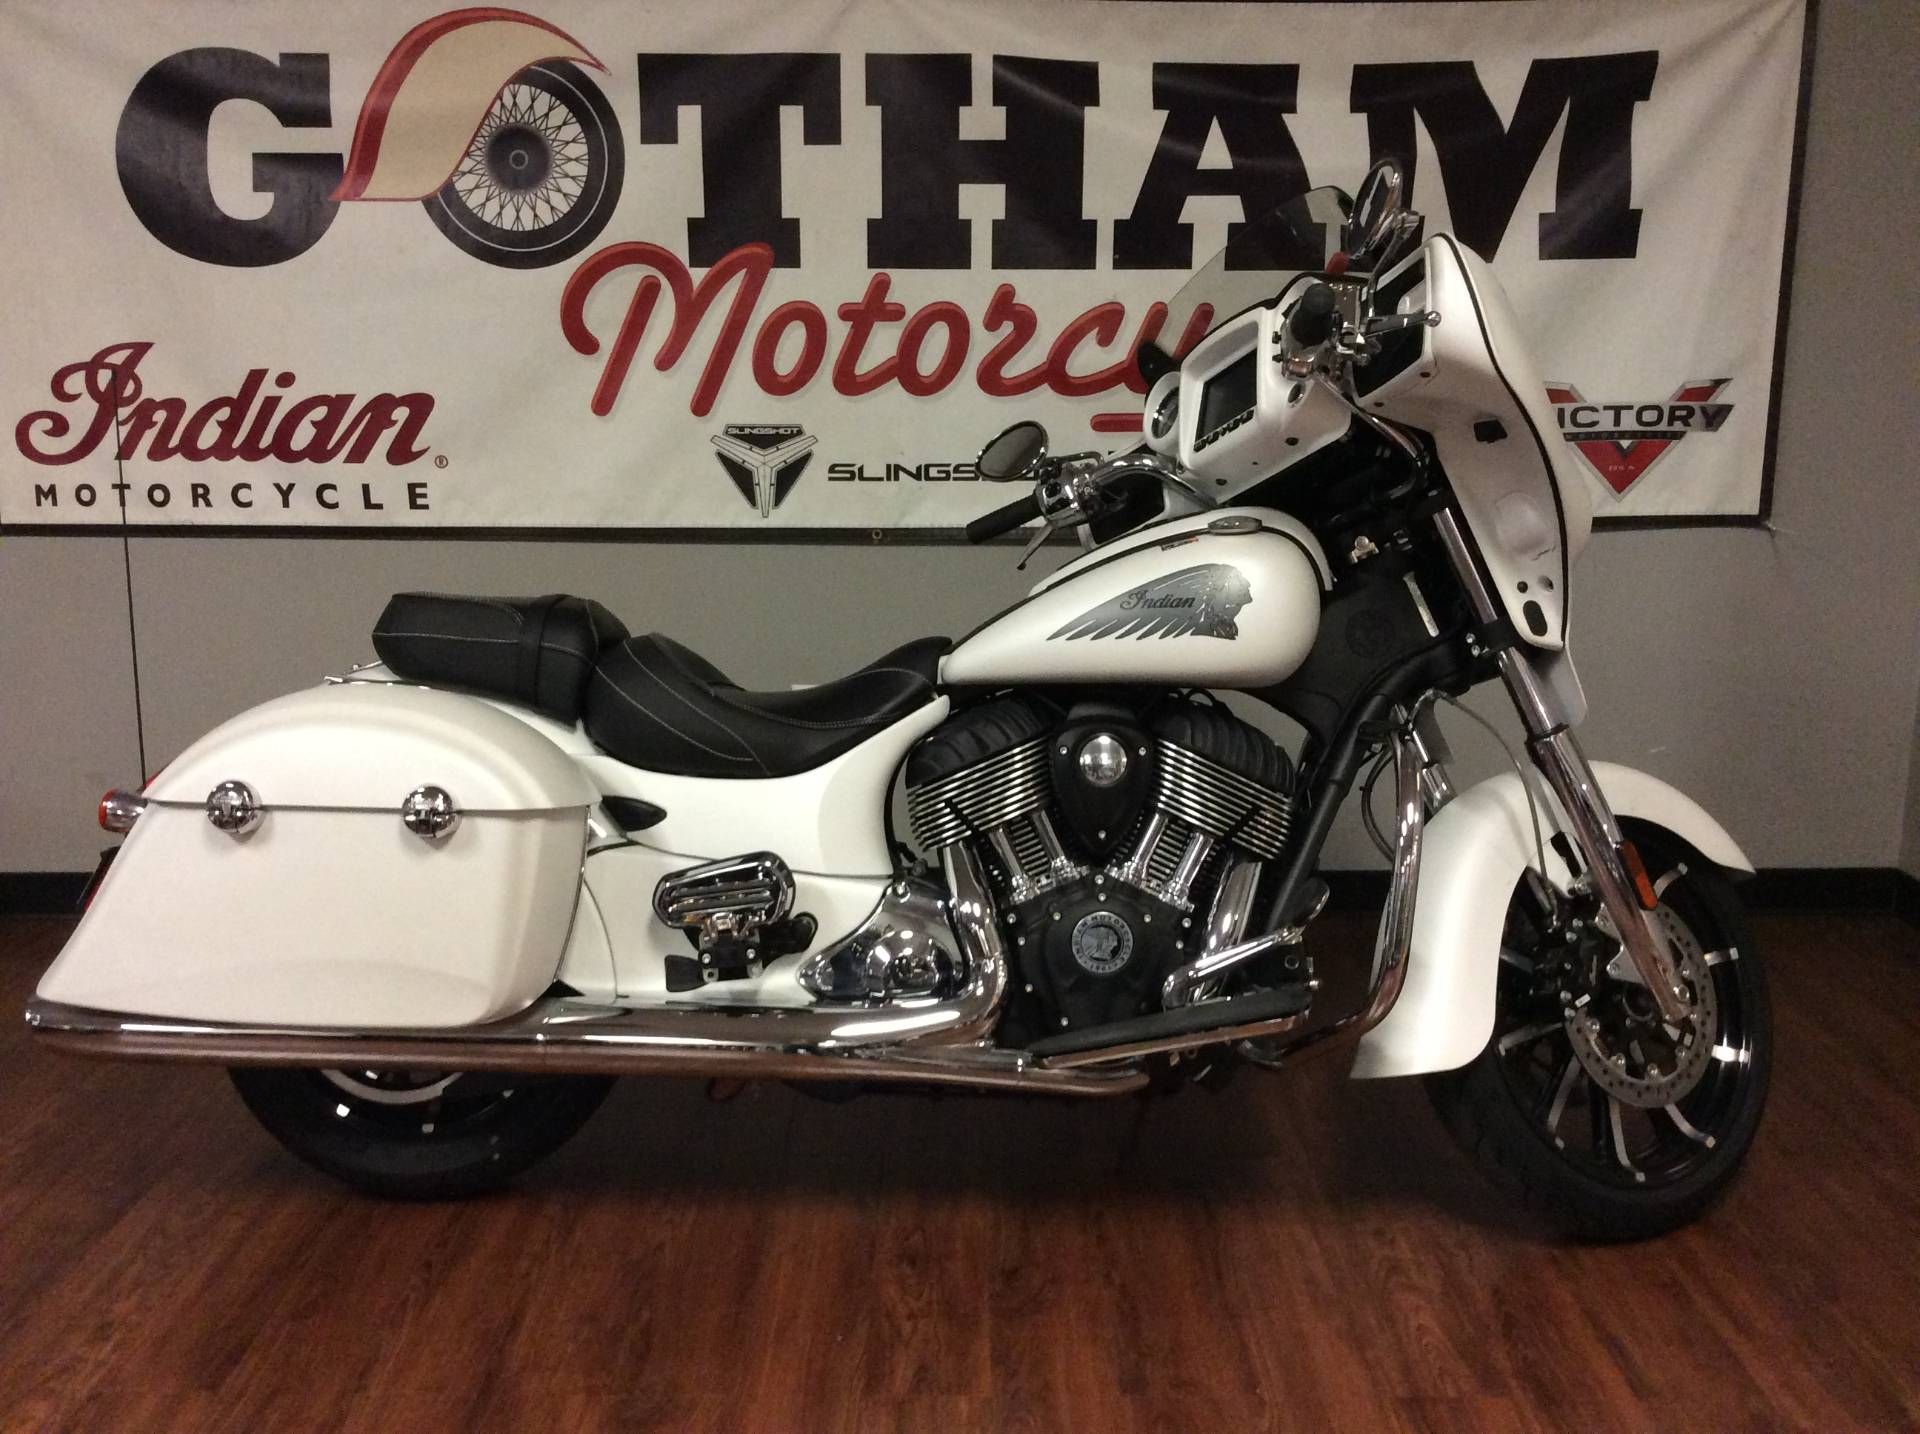 2018 Indian Chieftain Limited ABS 1